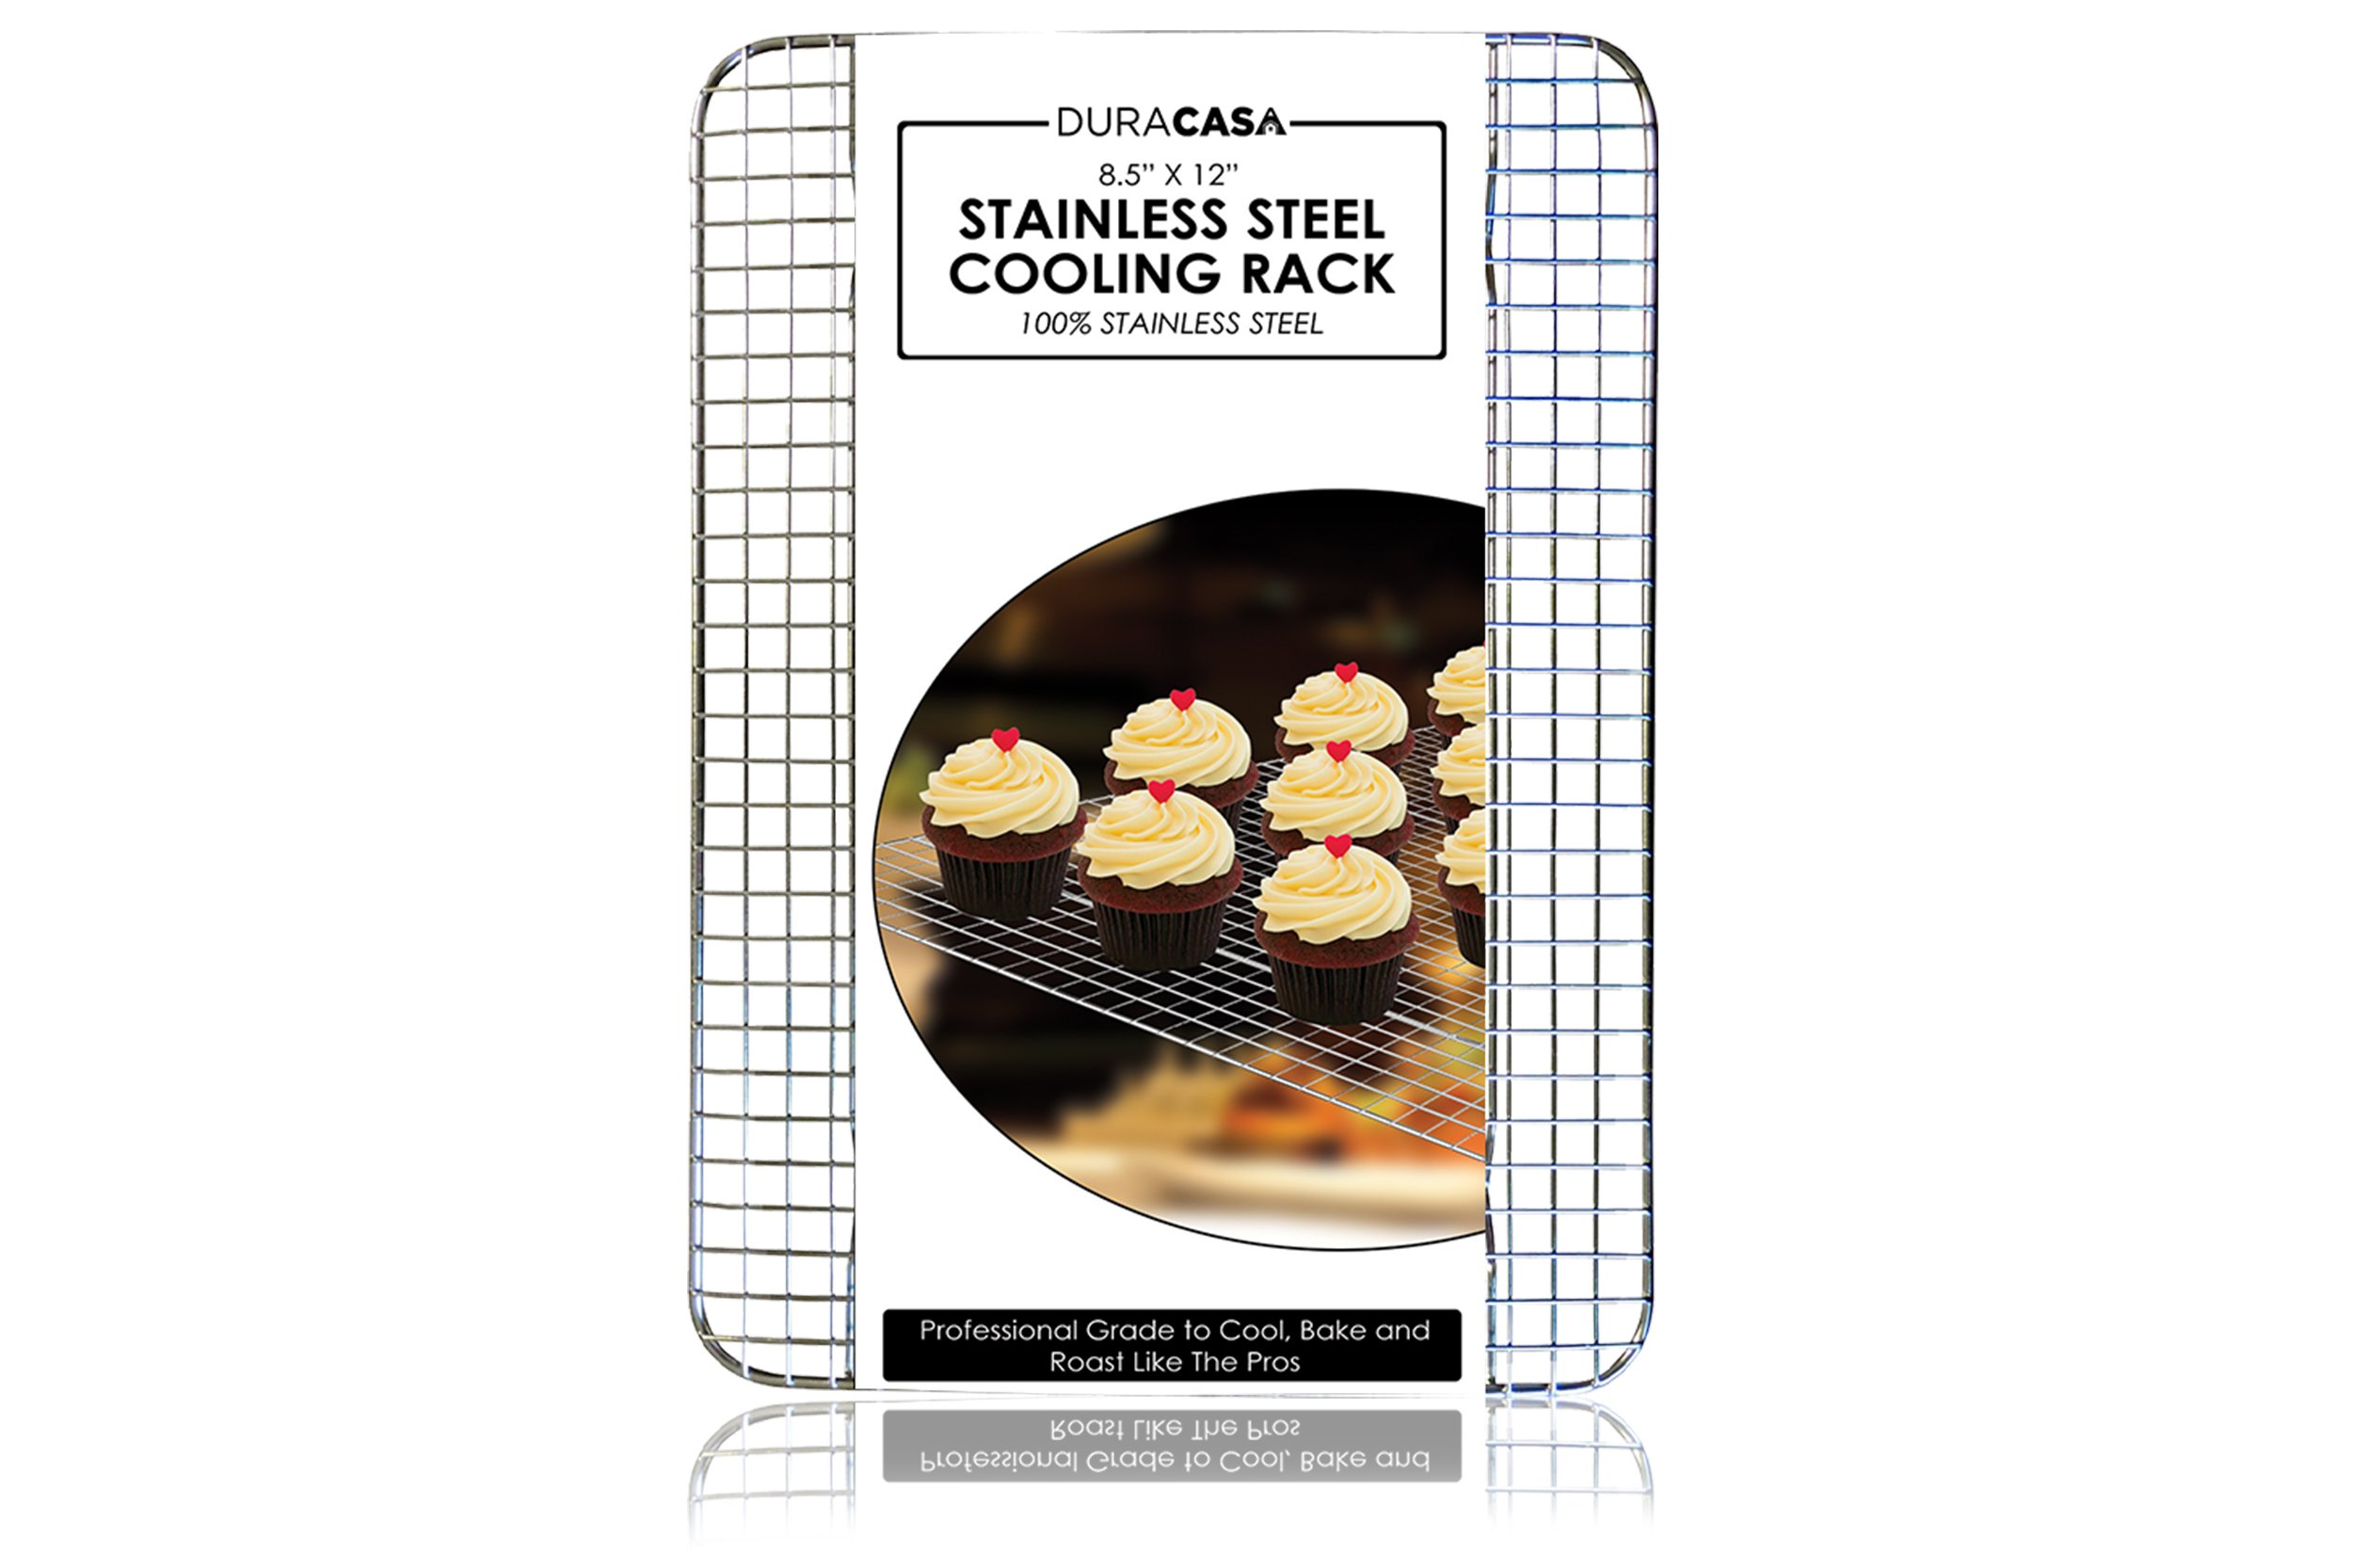 Baking Rack - Cooling Rack - Stainless Steel 304 Grade Roasting Rack - 8.5'' X 12'' - Heavy Duty Oven Safe, Commercial Quality Cooling Racks For Baking - Metal Wire Grid Rack Design